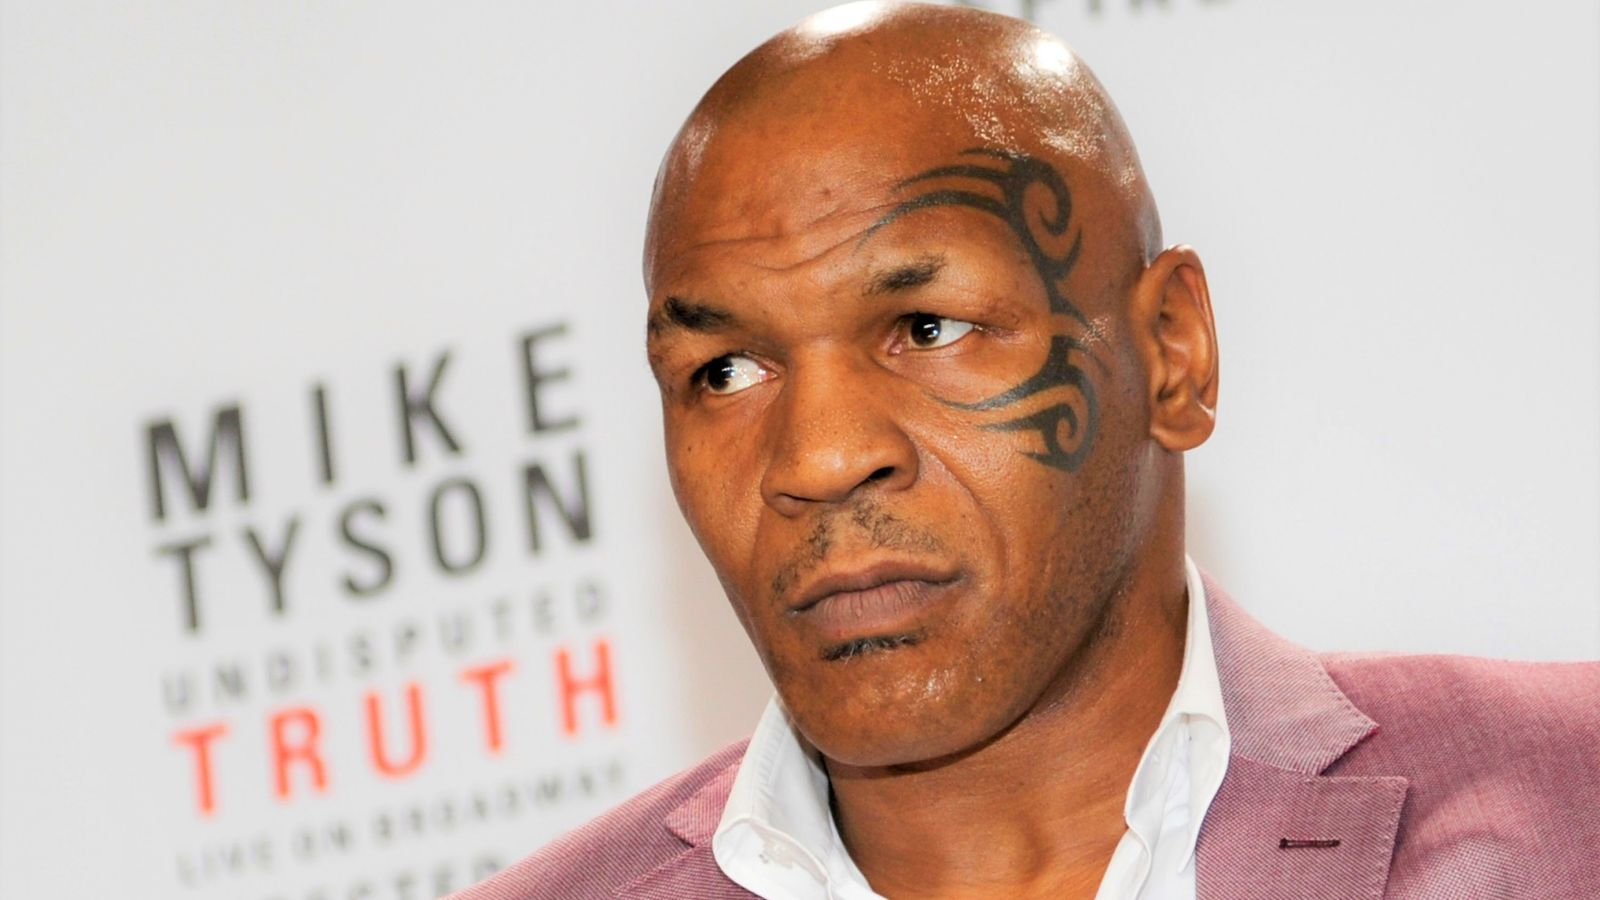 Mike Tyson believes he became the world's most hated man after biting Evander Holyfield - Sky Sports